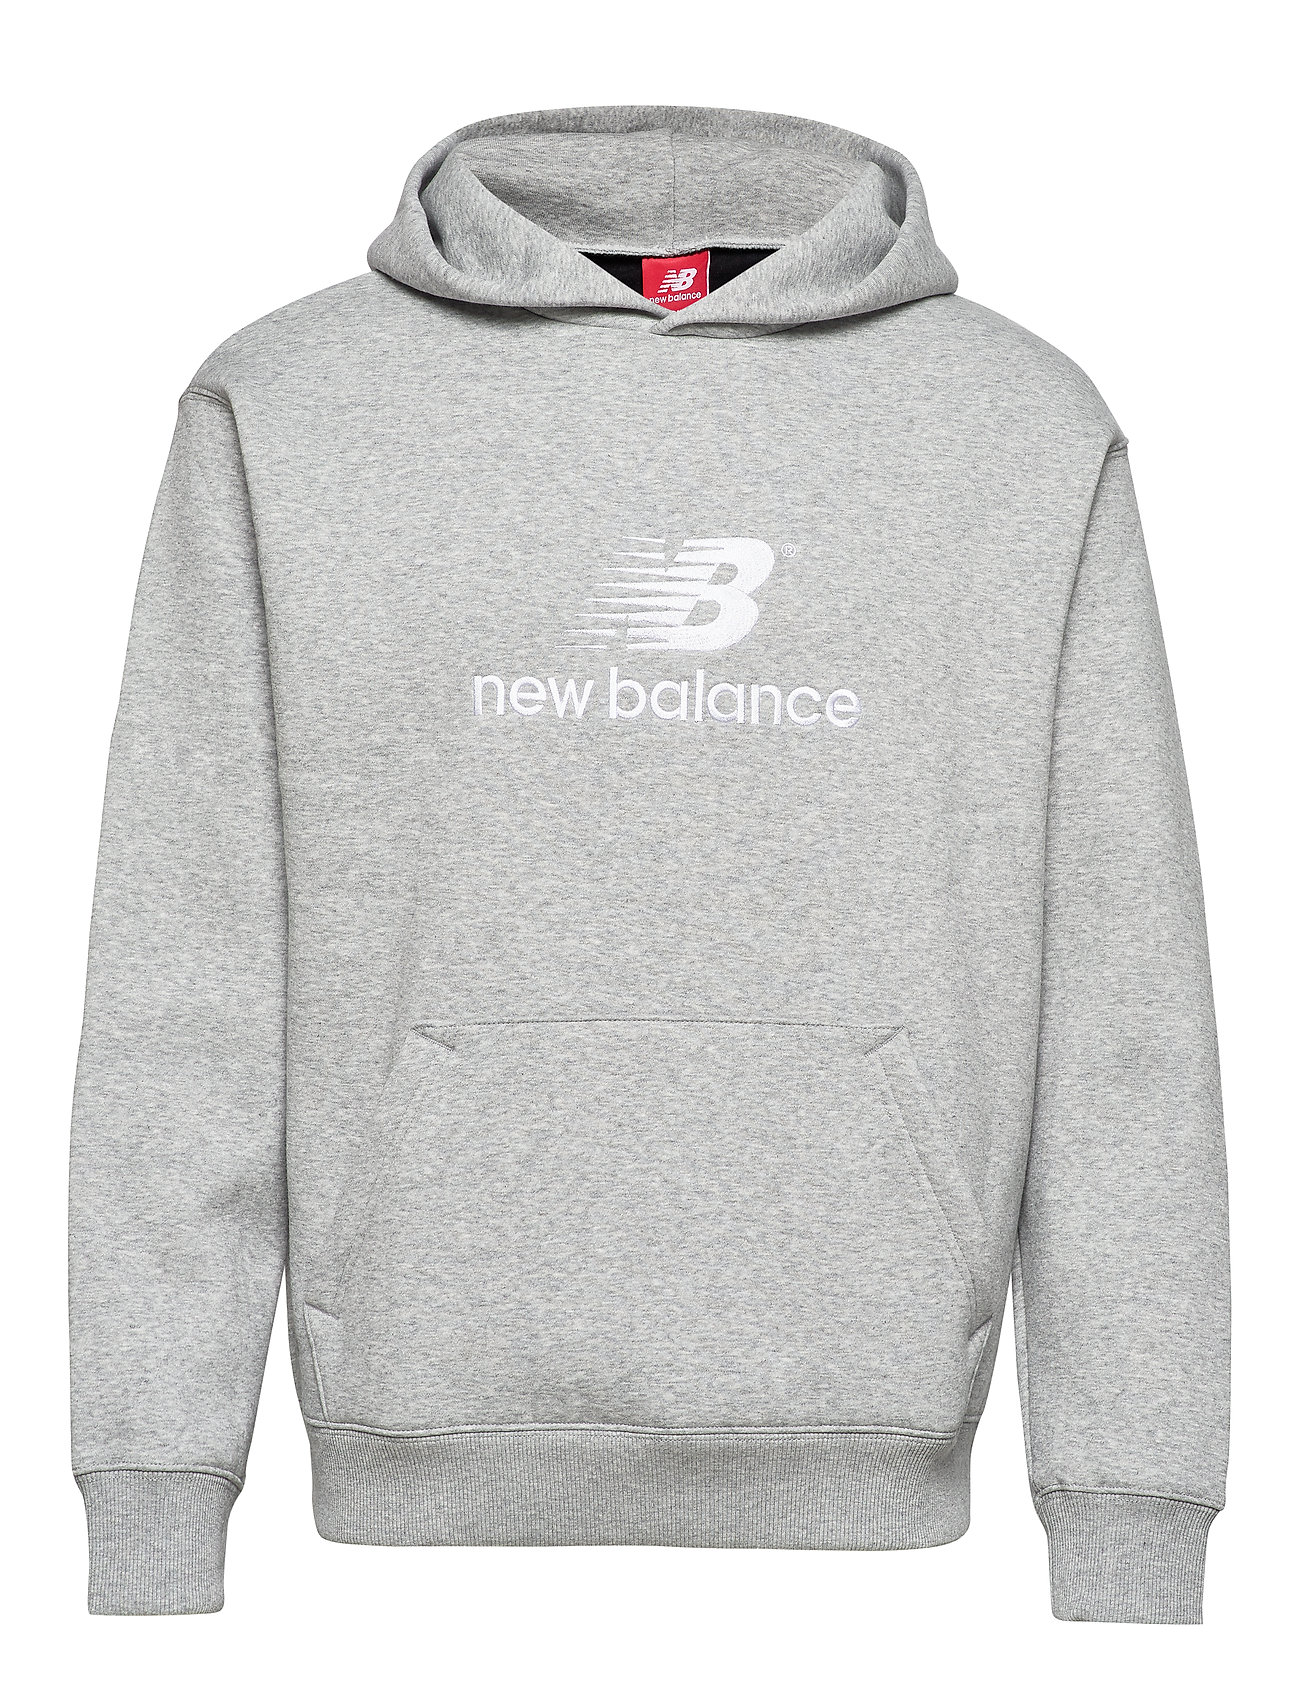 New Balance NB ATHLETICS PREMIUM ARCHIVE HOODIE - ATHLETIC GRE